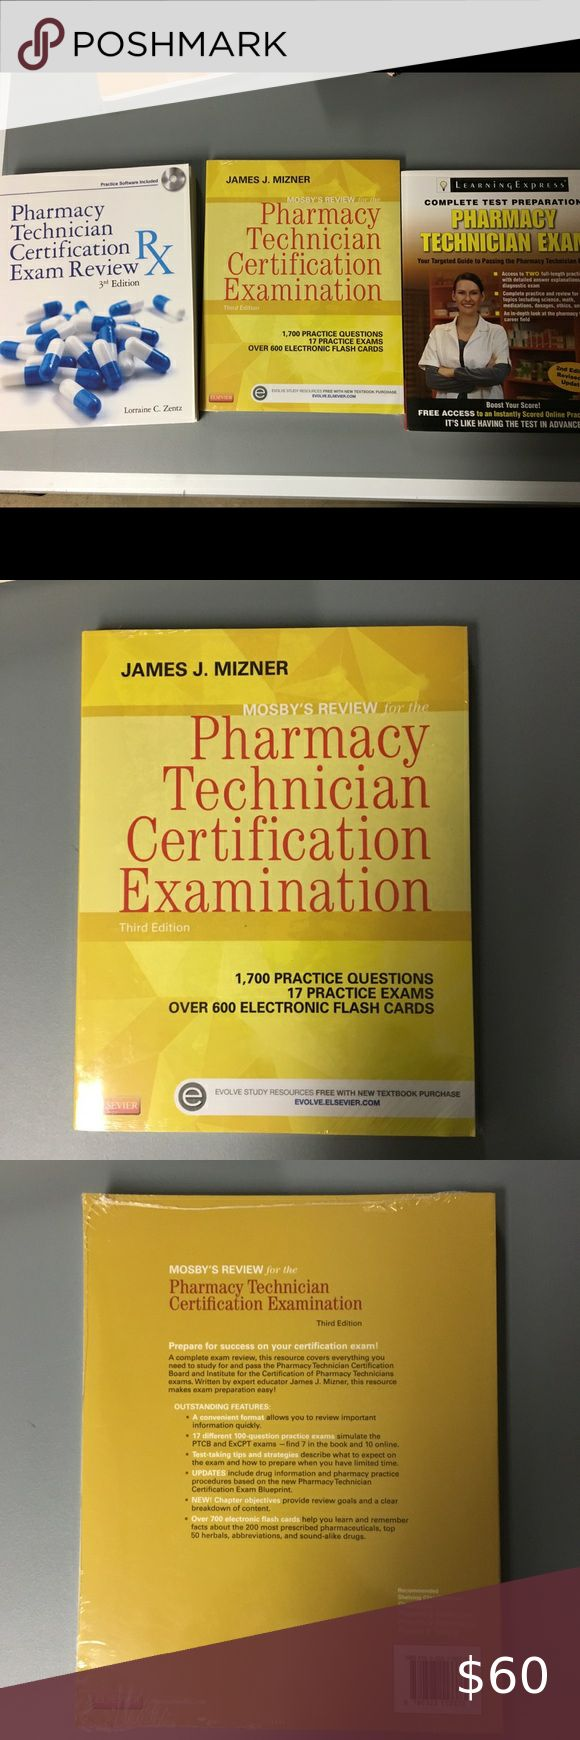 Pharmacy Technician Certification Exam practice 3 new